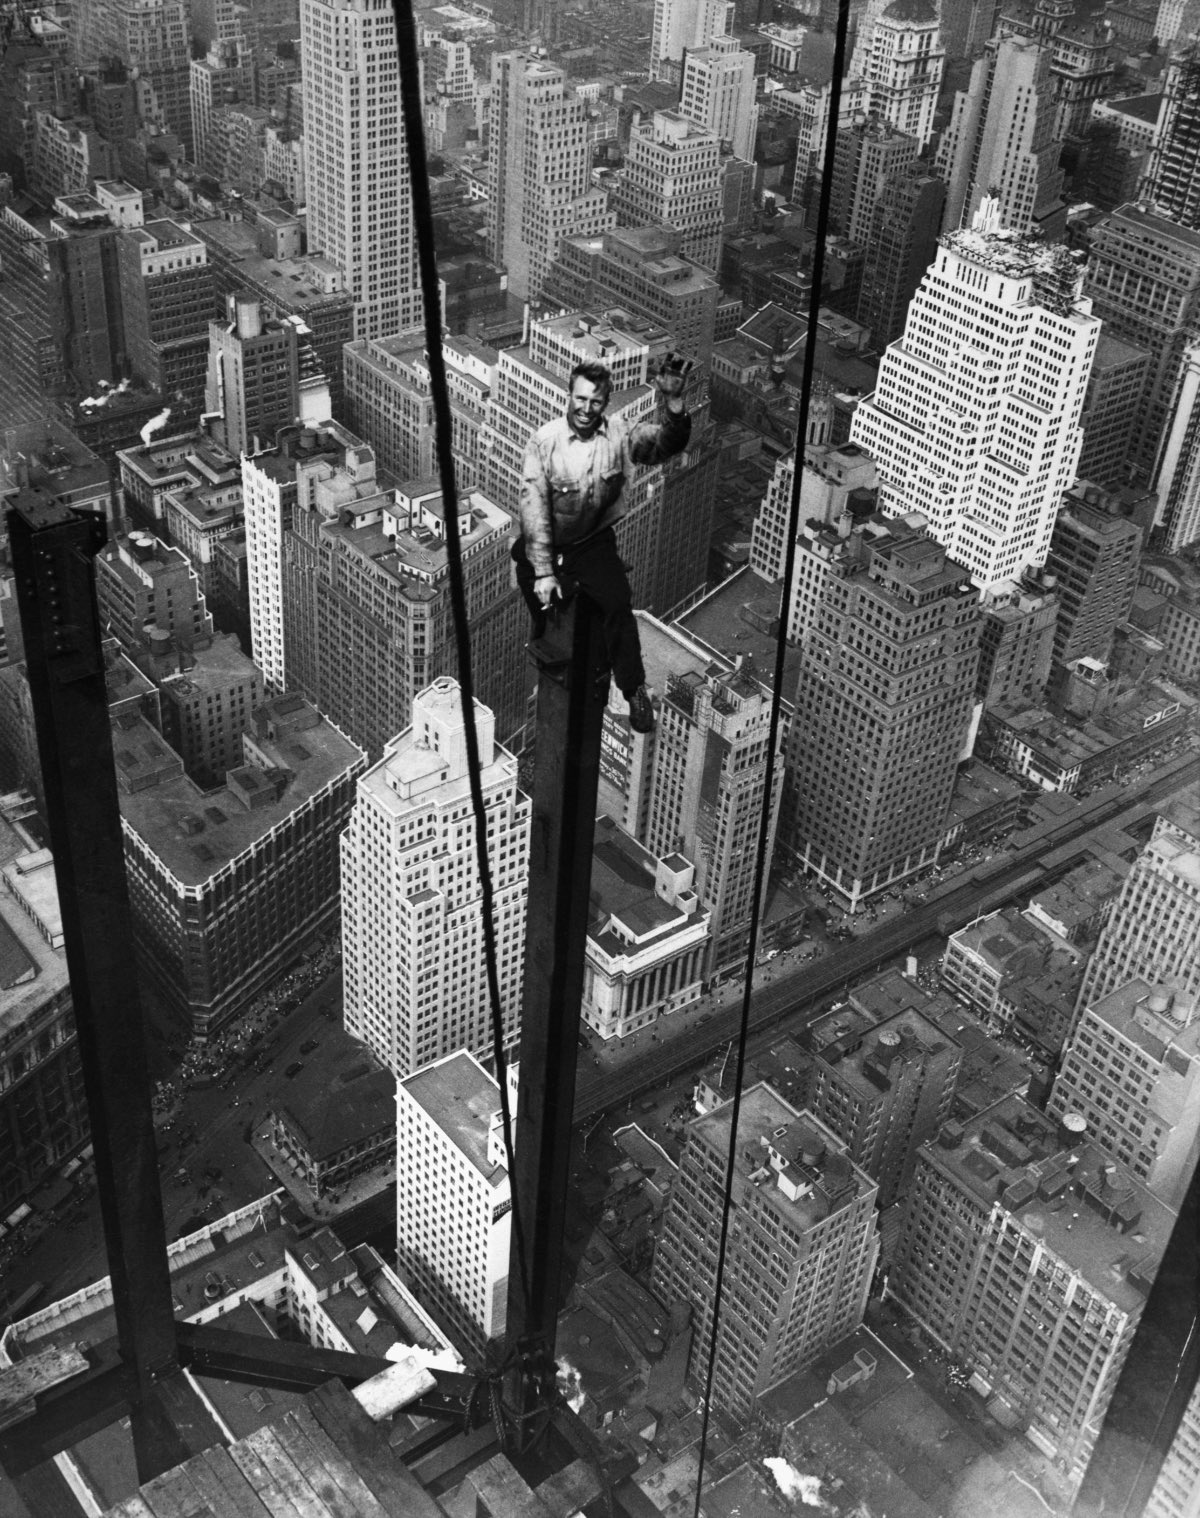 Empire State Building daredevil photos will give you vertigo